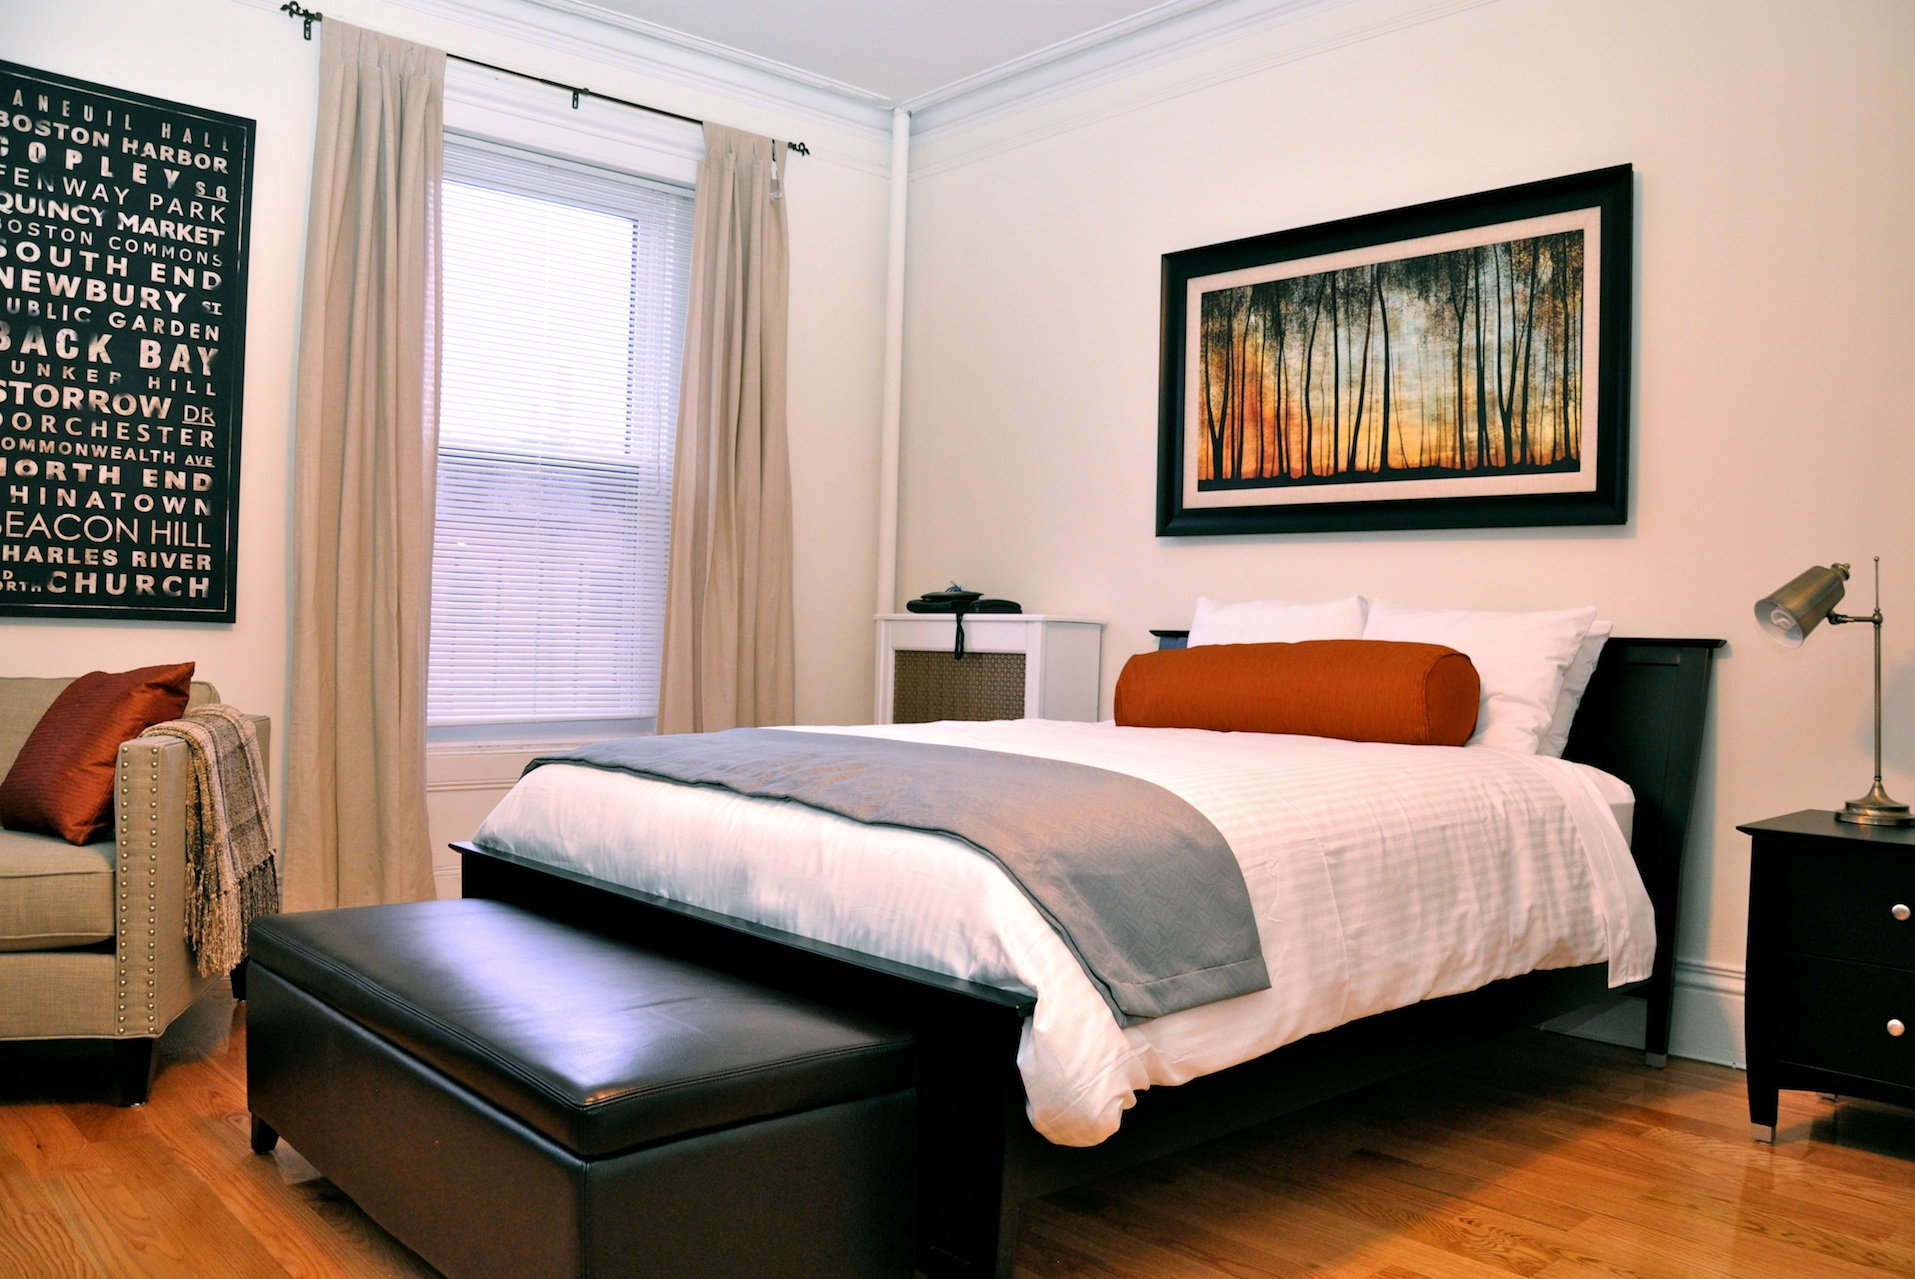 86 Charles Compass Furnished Apartments In Boston Massachusetts